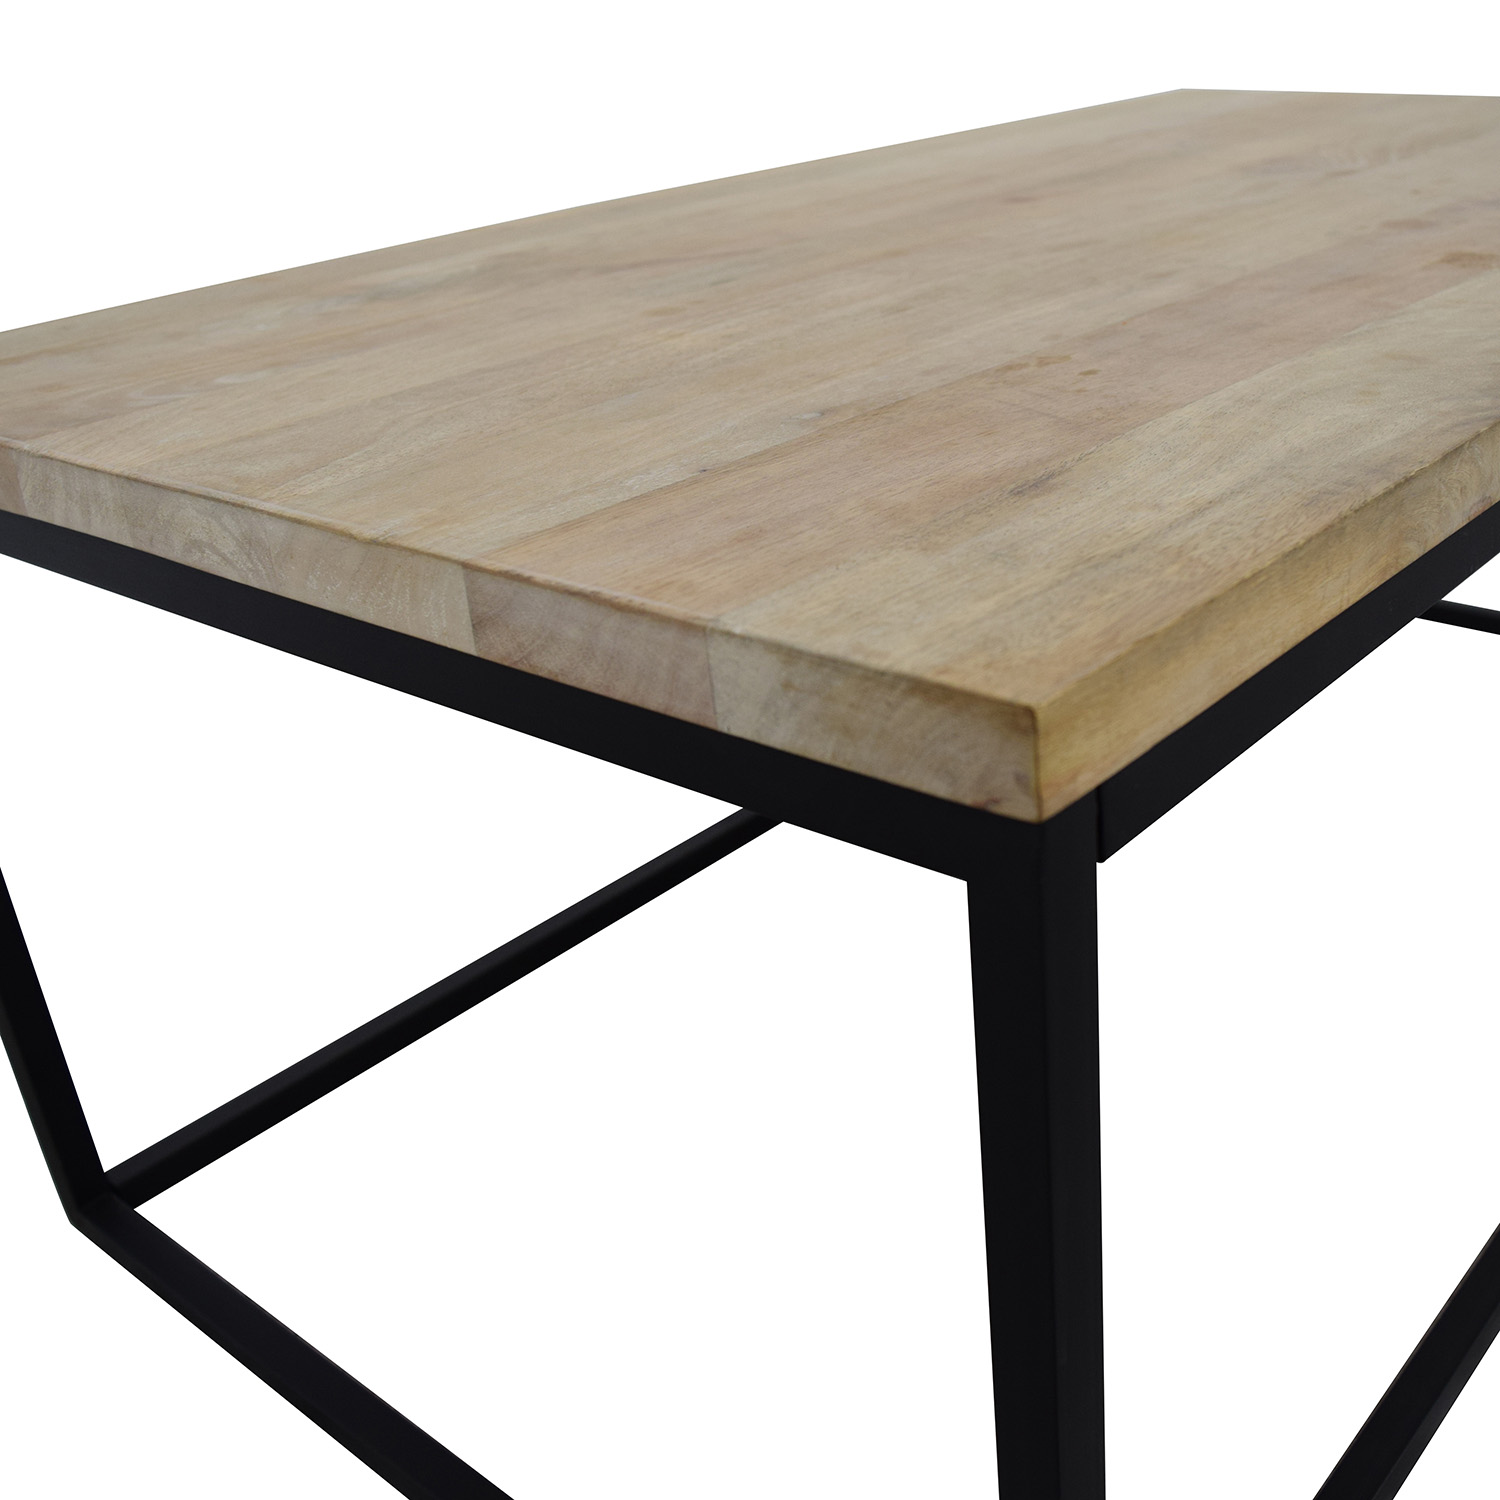 West Elm West Elm Box Frame Coffee Table dimensions